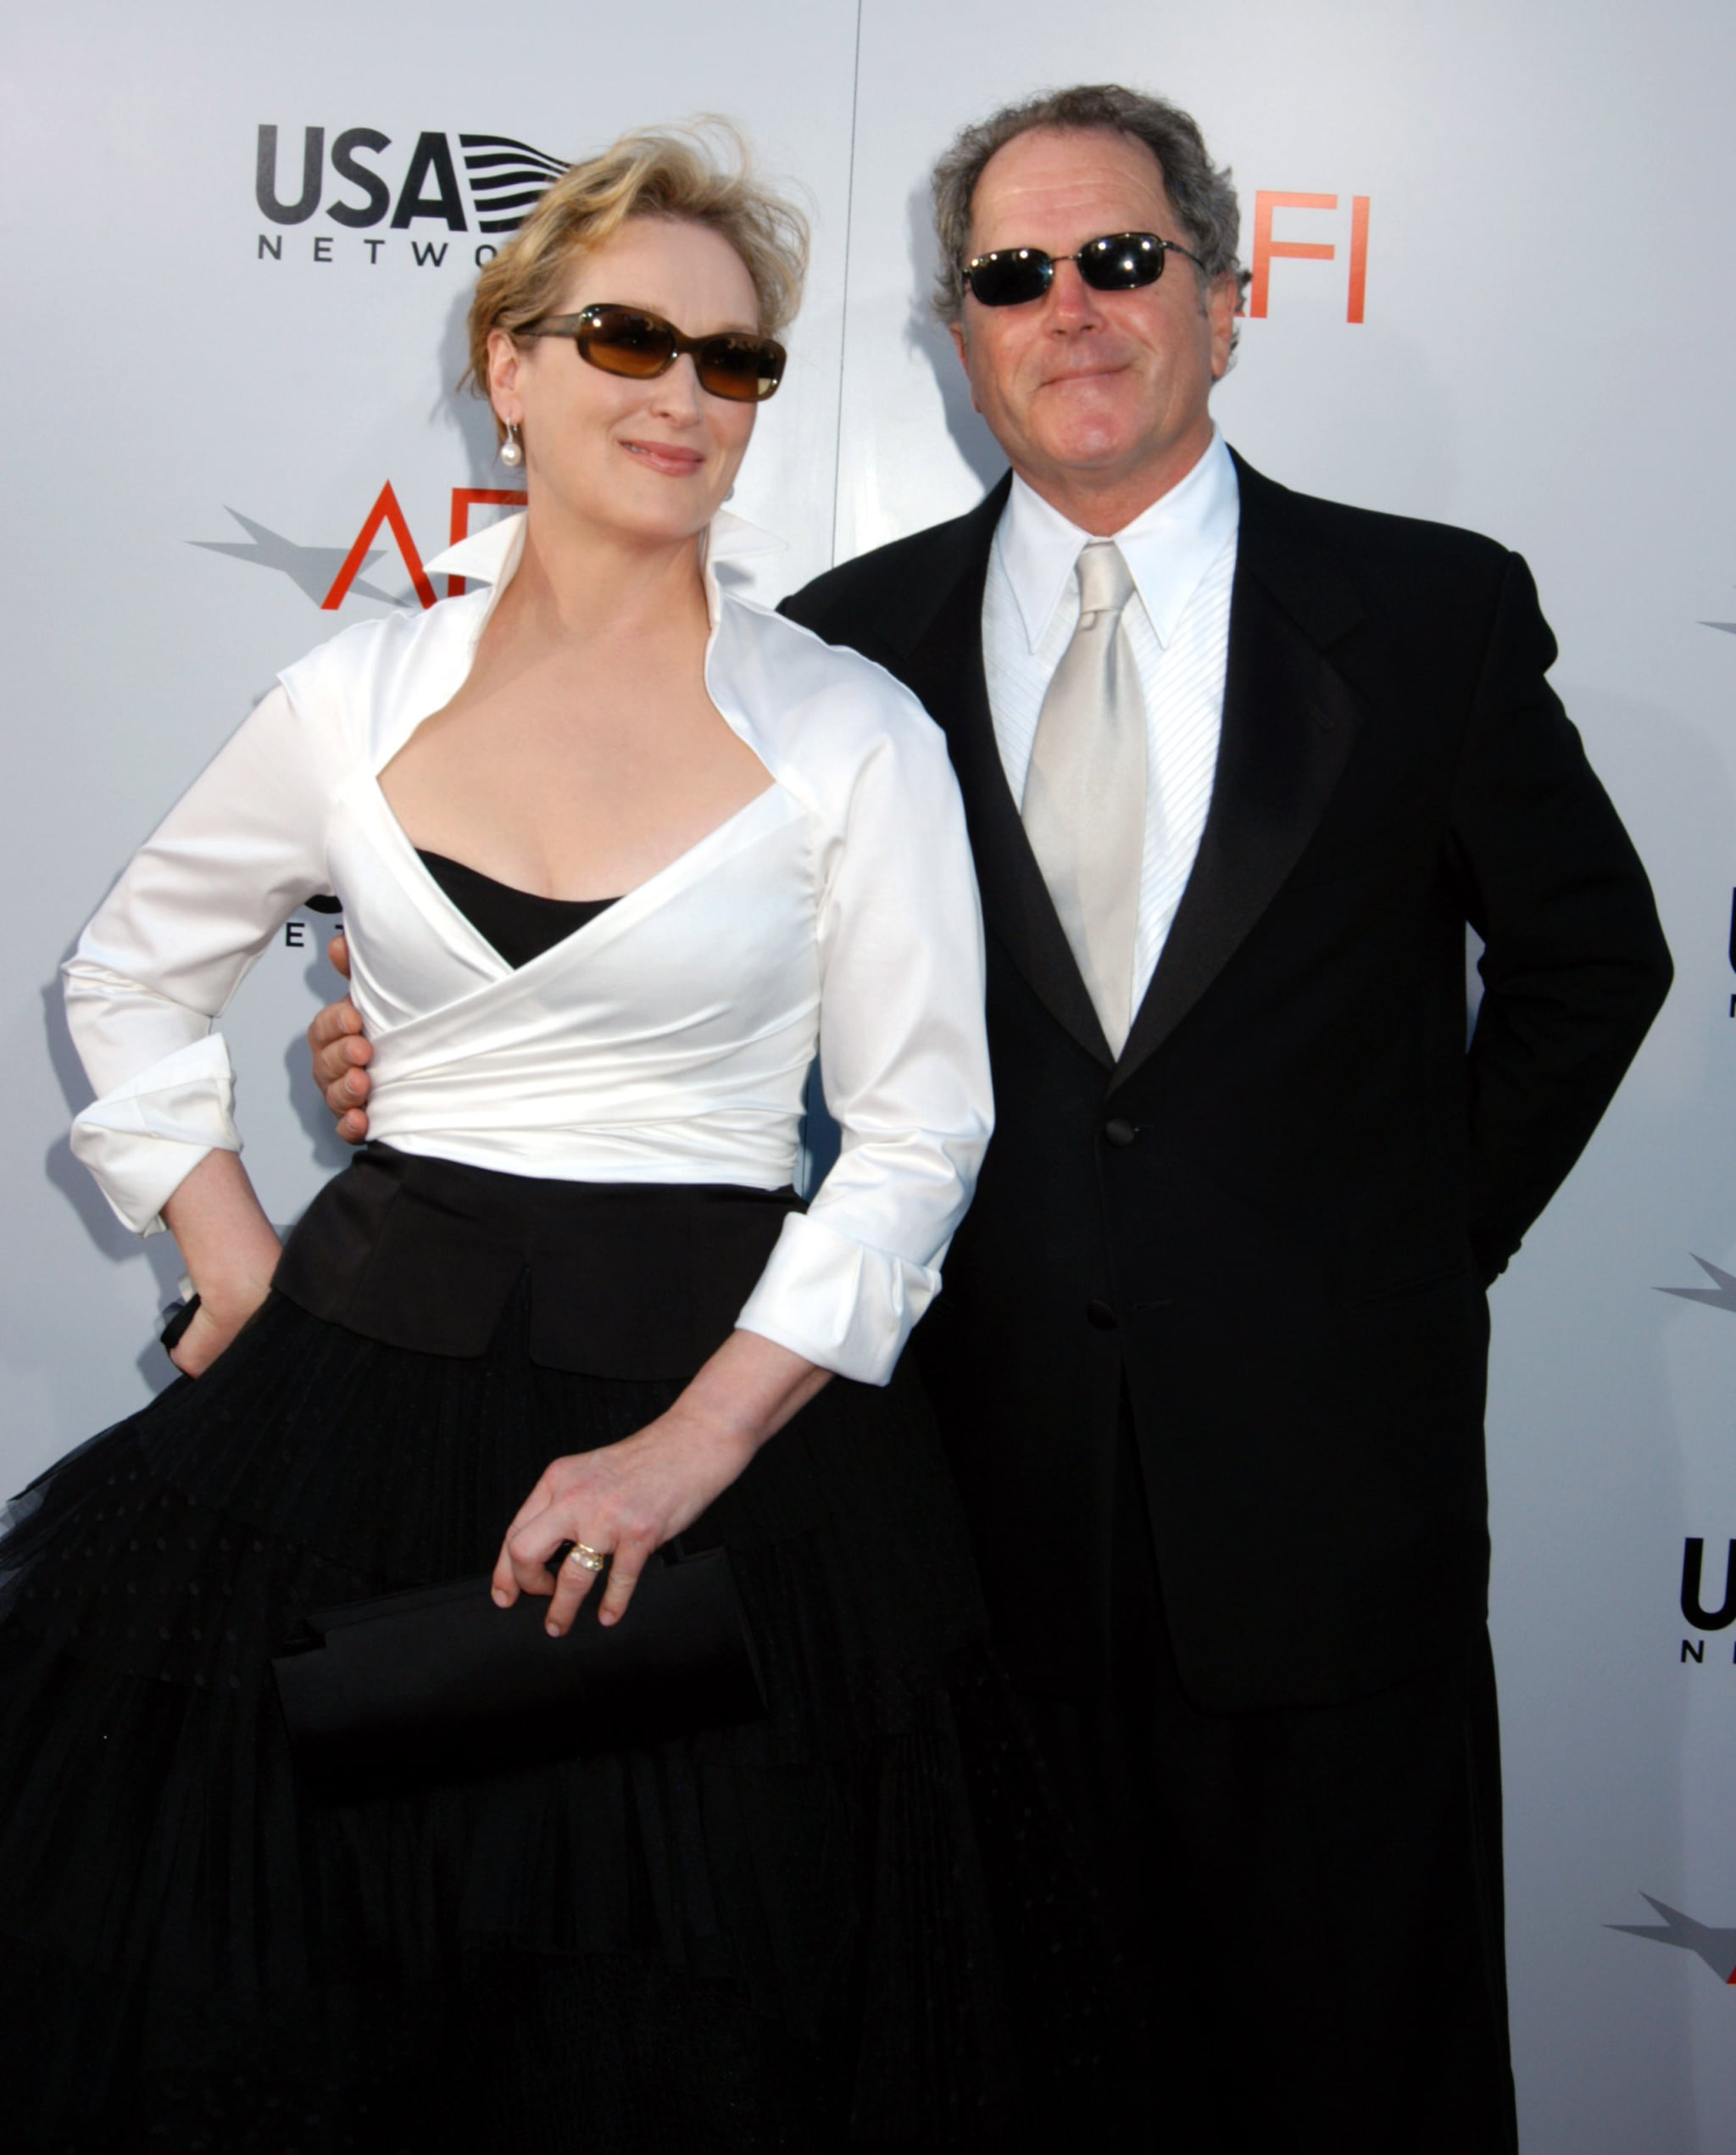 The couple sported coordinating shades for the 2004 AFI Lifetime Achievement Award event dedicated to Meryl.